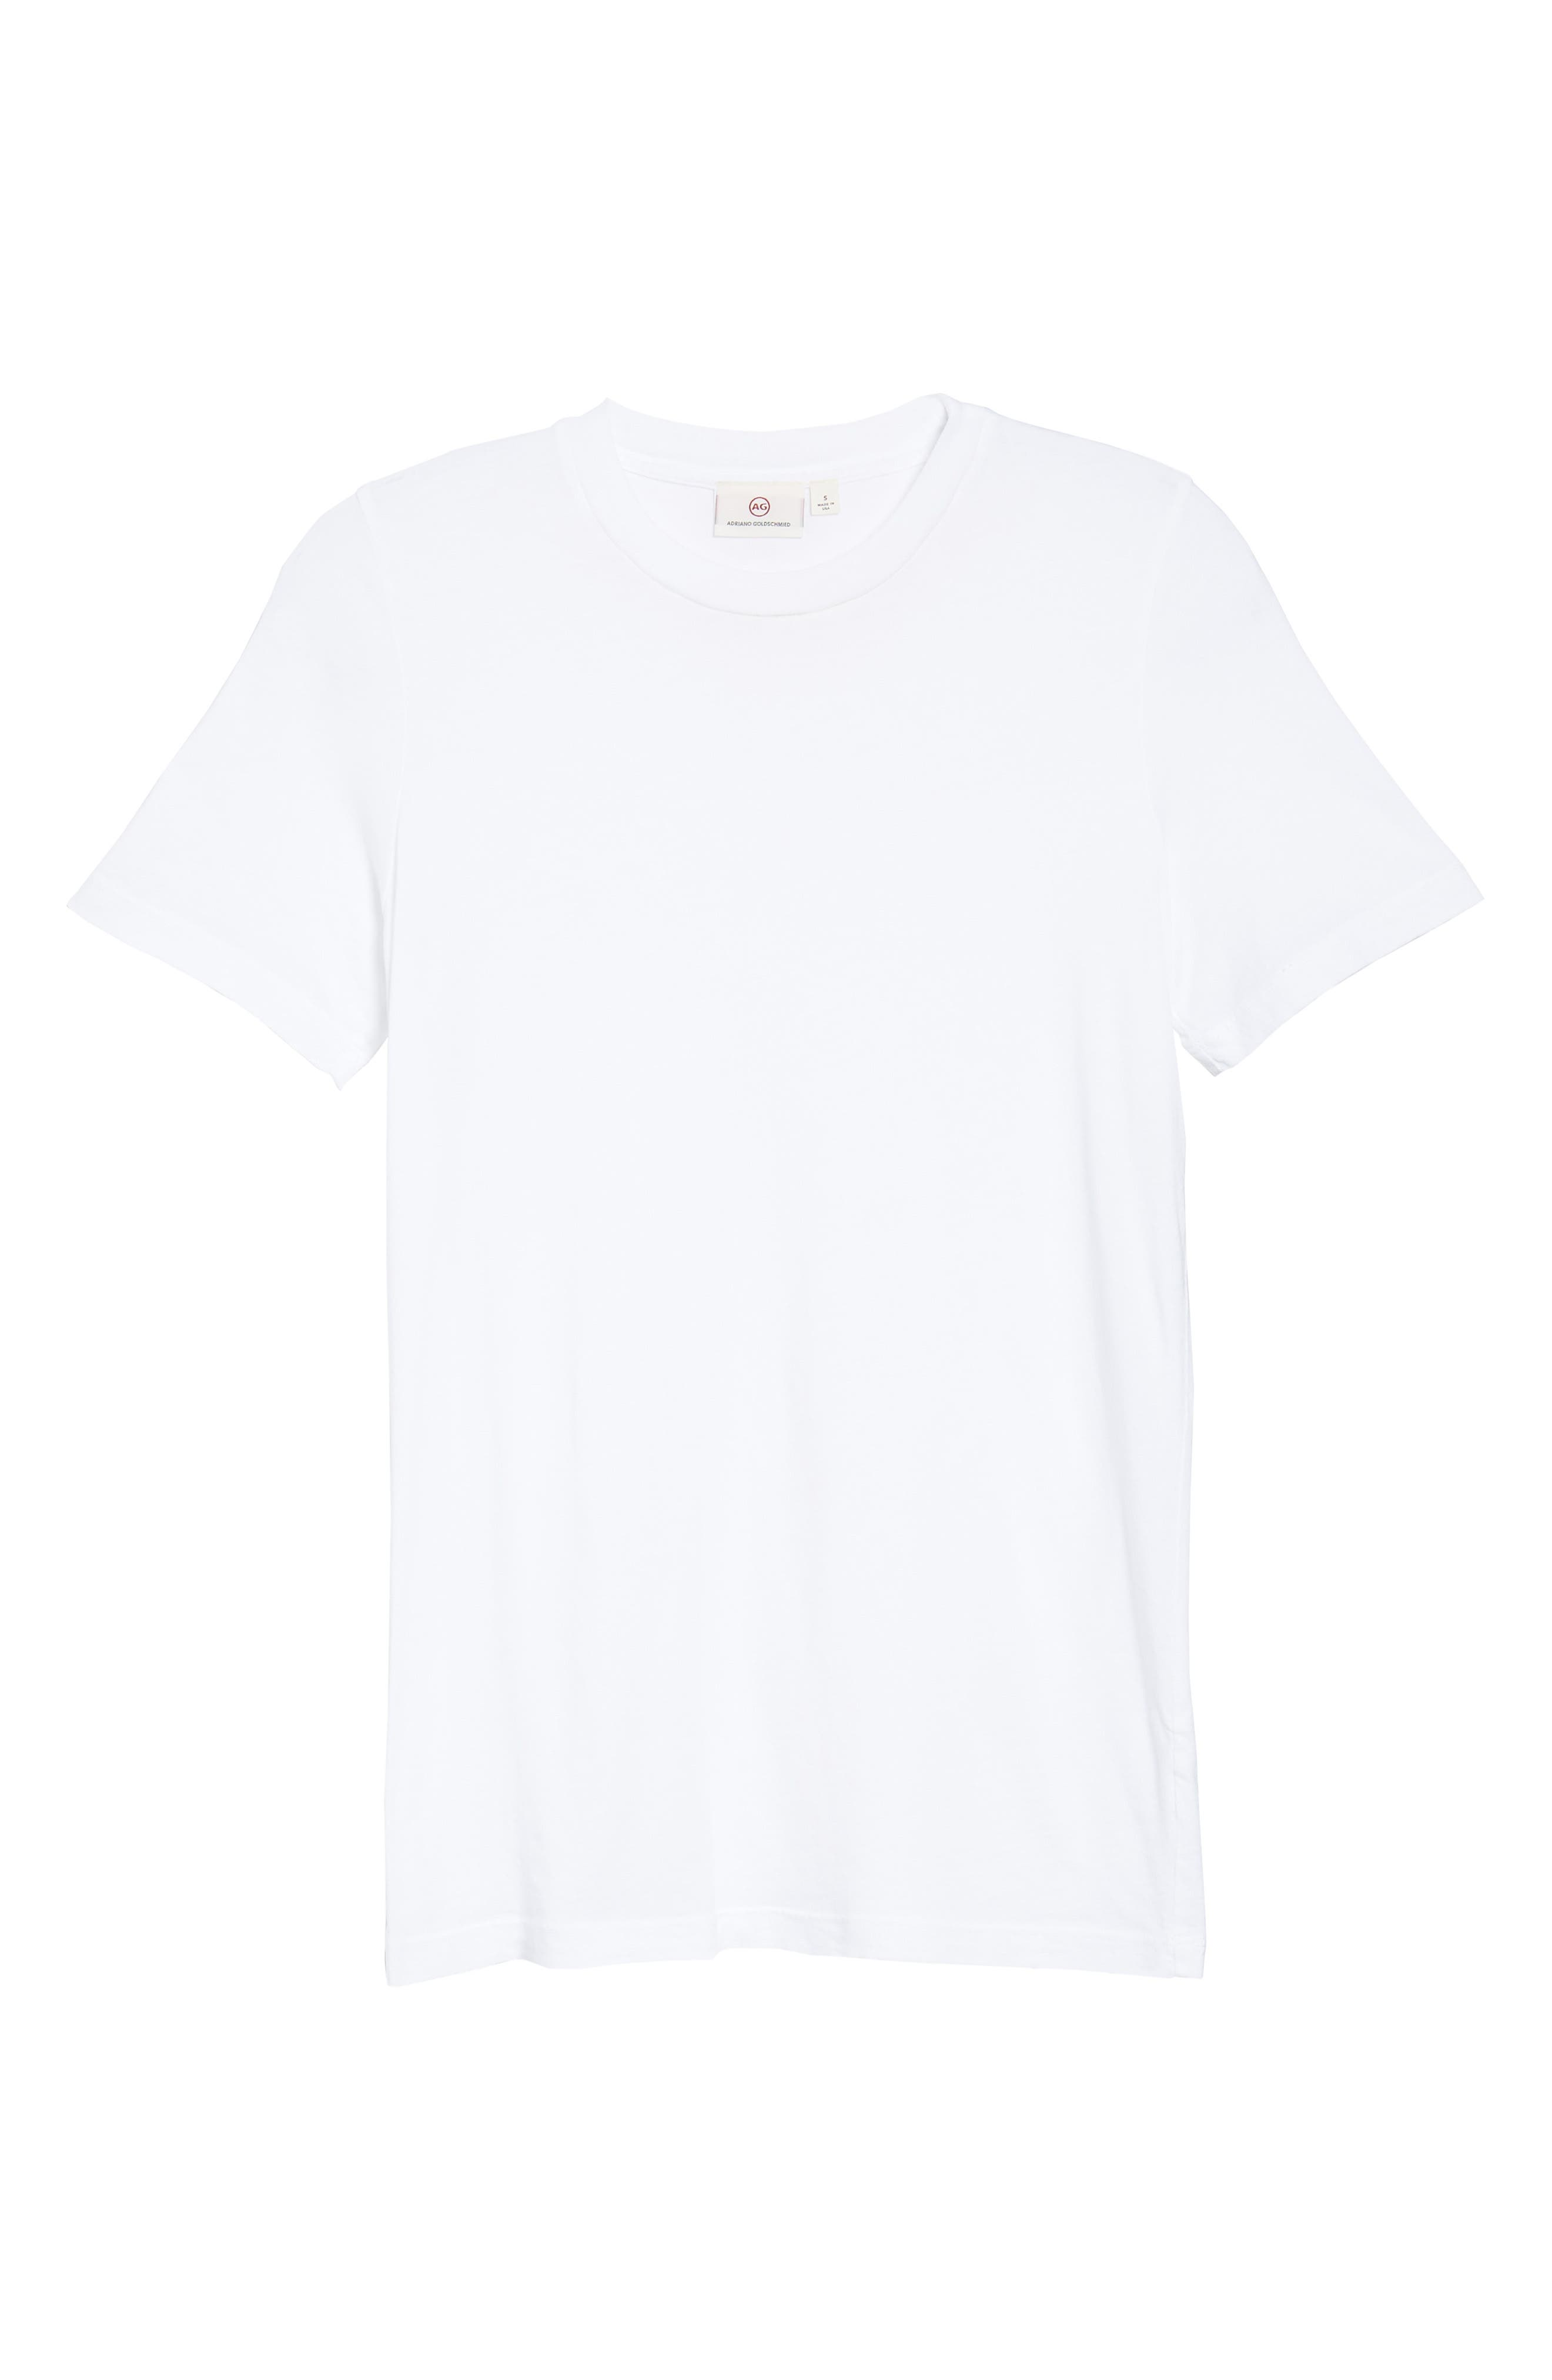 Crewneck Tee,                             Alternate thumbnail 7, color,                             TRUE WHITE